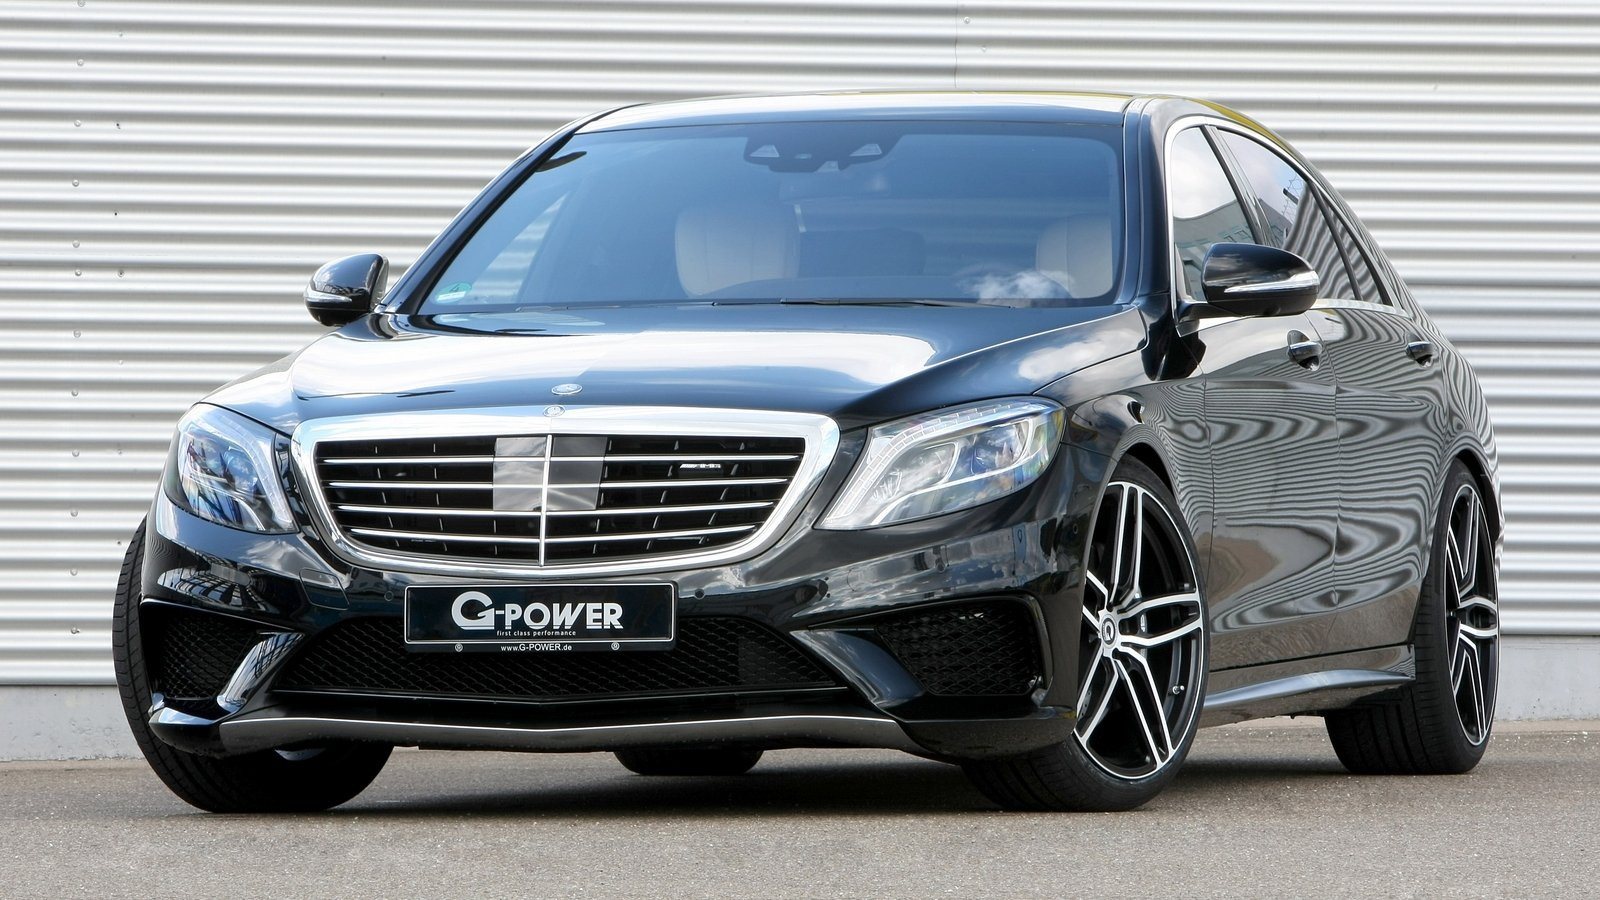 2015 mercedes s63 amg by g power top speed. Black Bedroom Furniture Sets. Home Design Ideas